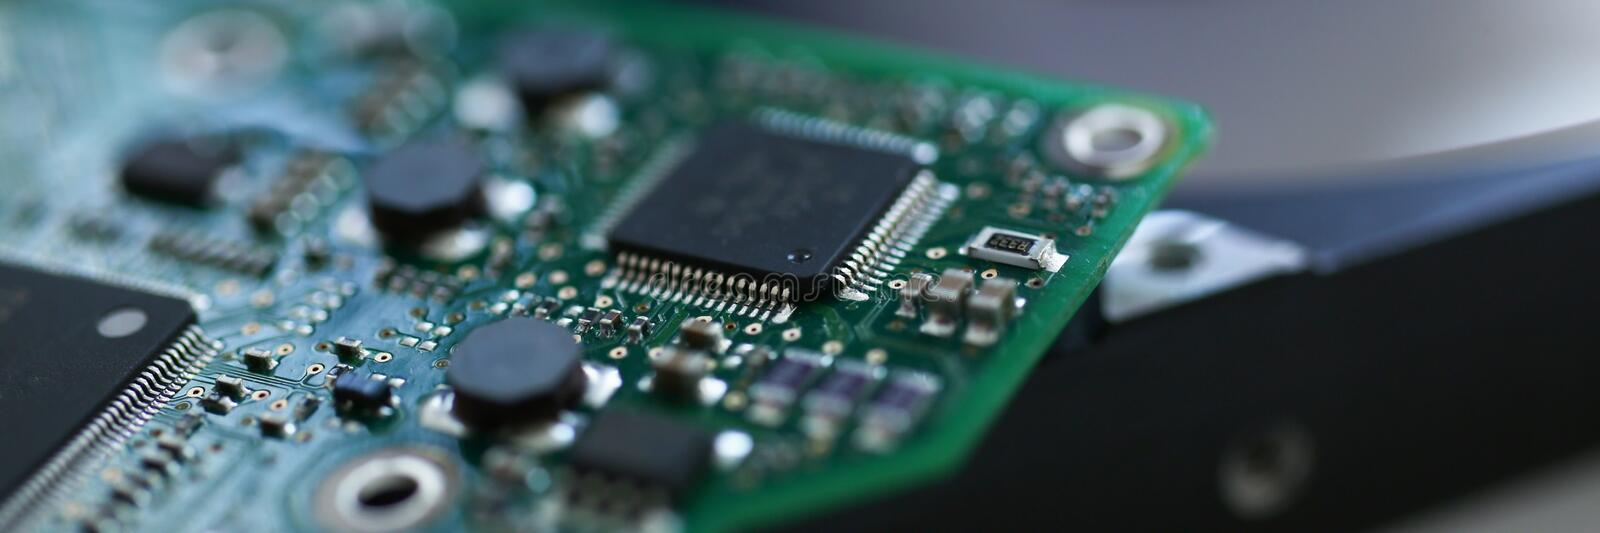 Electronic board with microchips on a hard drive background royalty free stock photo